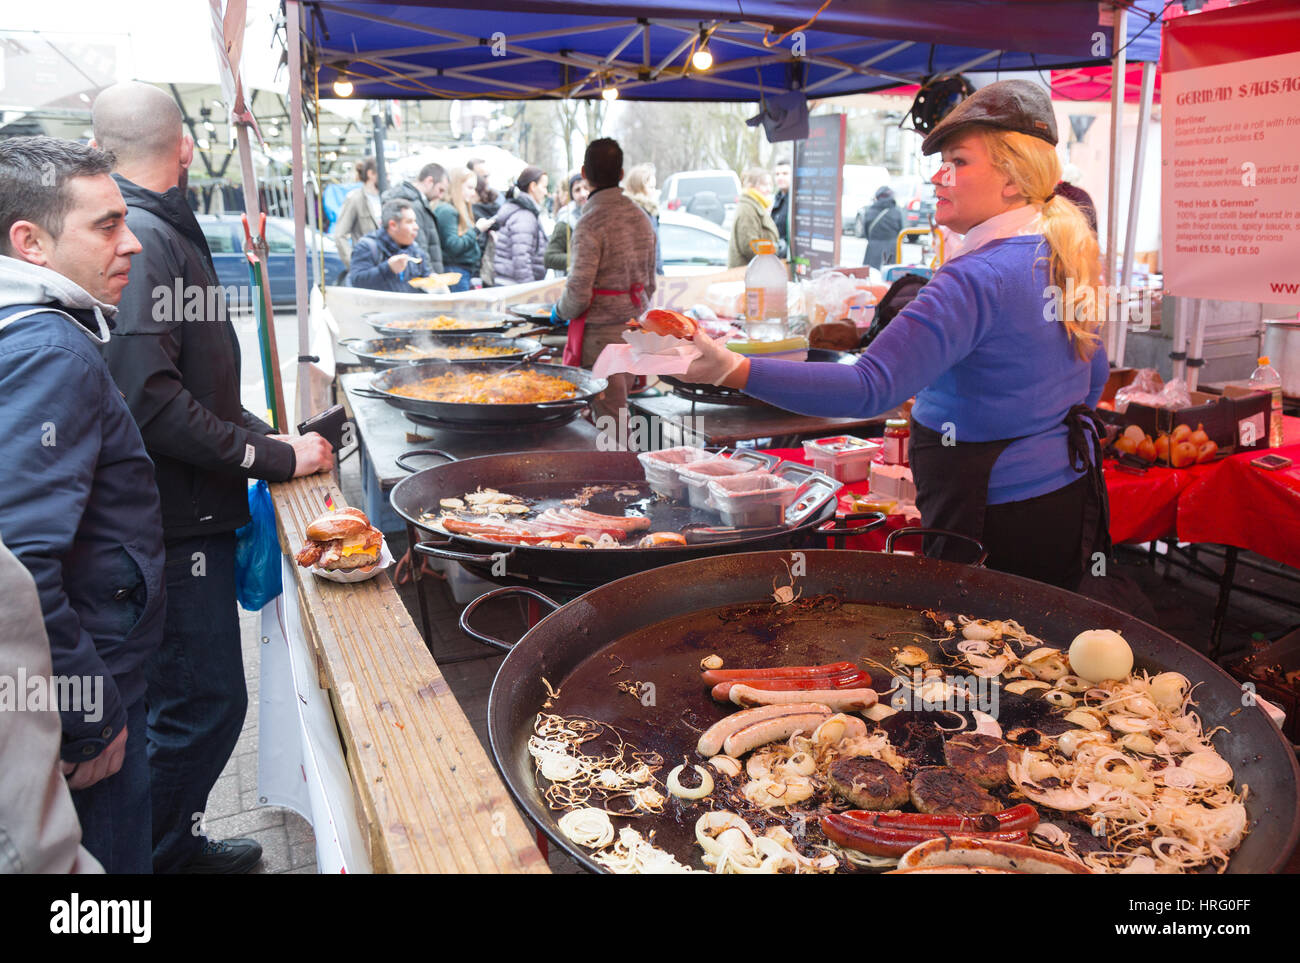 Street food London UK - People buying food at a stall, the Acklam Food Market, Portobello Road, Notting Hill, London - Stock Image